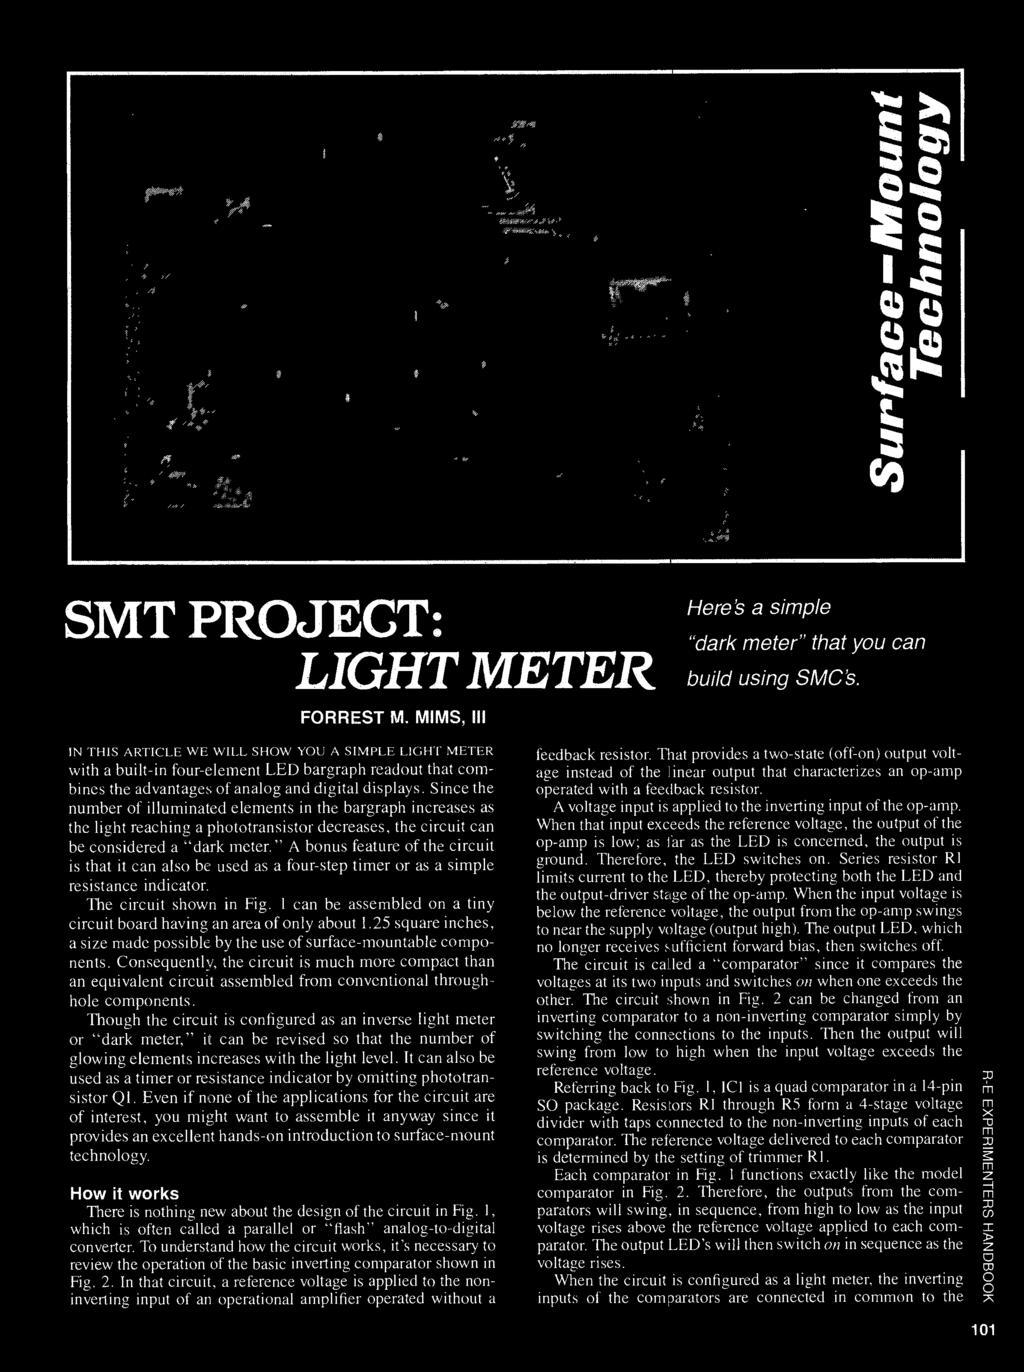 Surface Mount Technology Pdf Lm741 2n3904 2n3906 The Circuit Built Around An Op Amp Since Number Of Illuminated Elements In Bargraph Increases As Light Reaching A Phototransistor